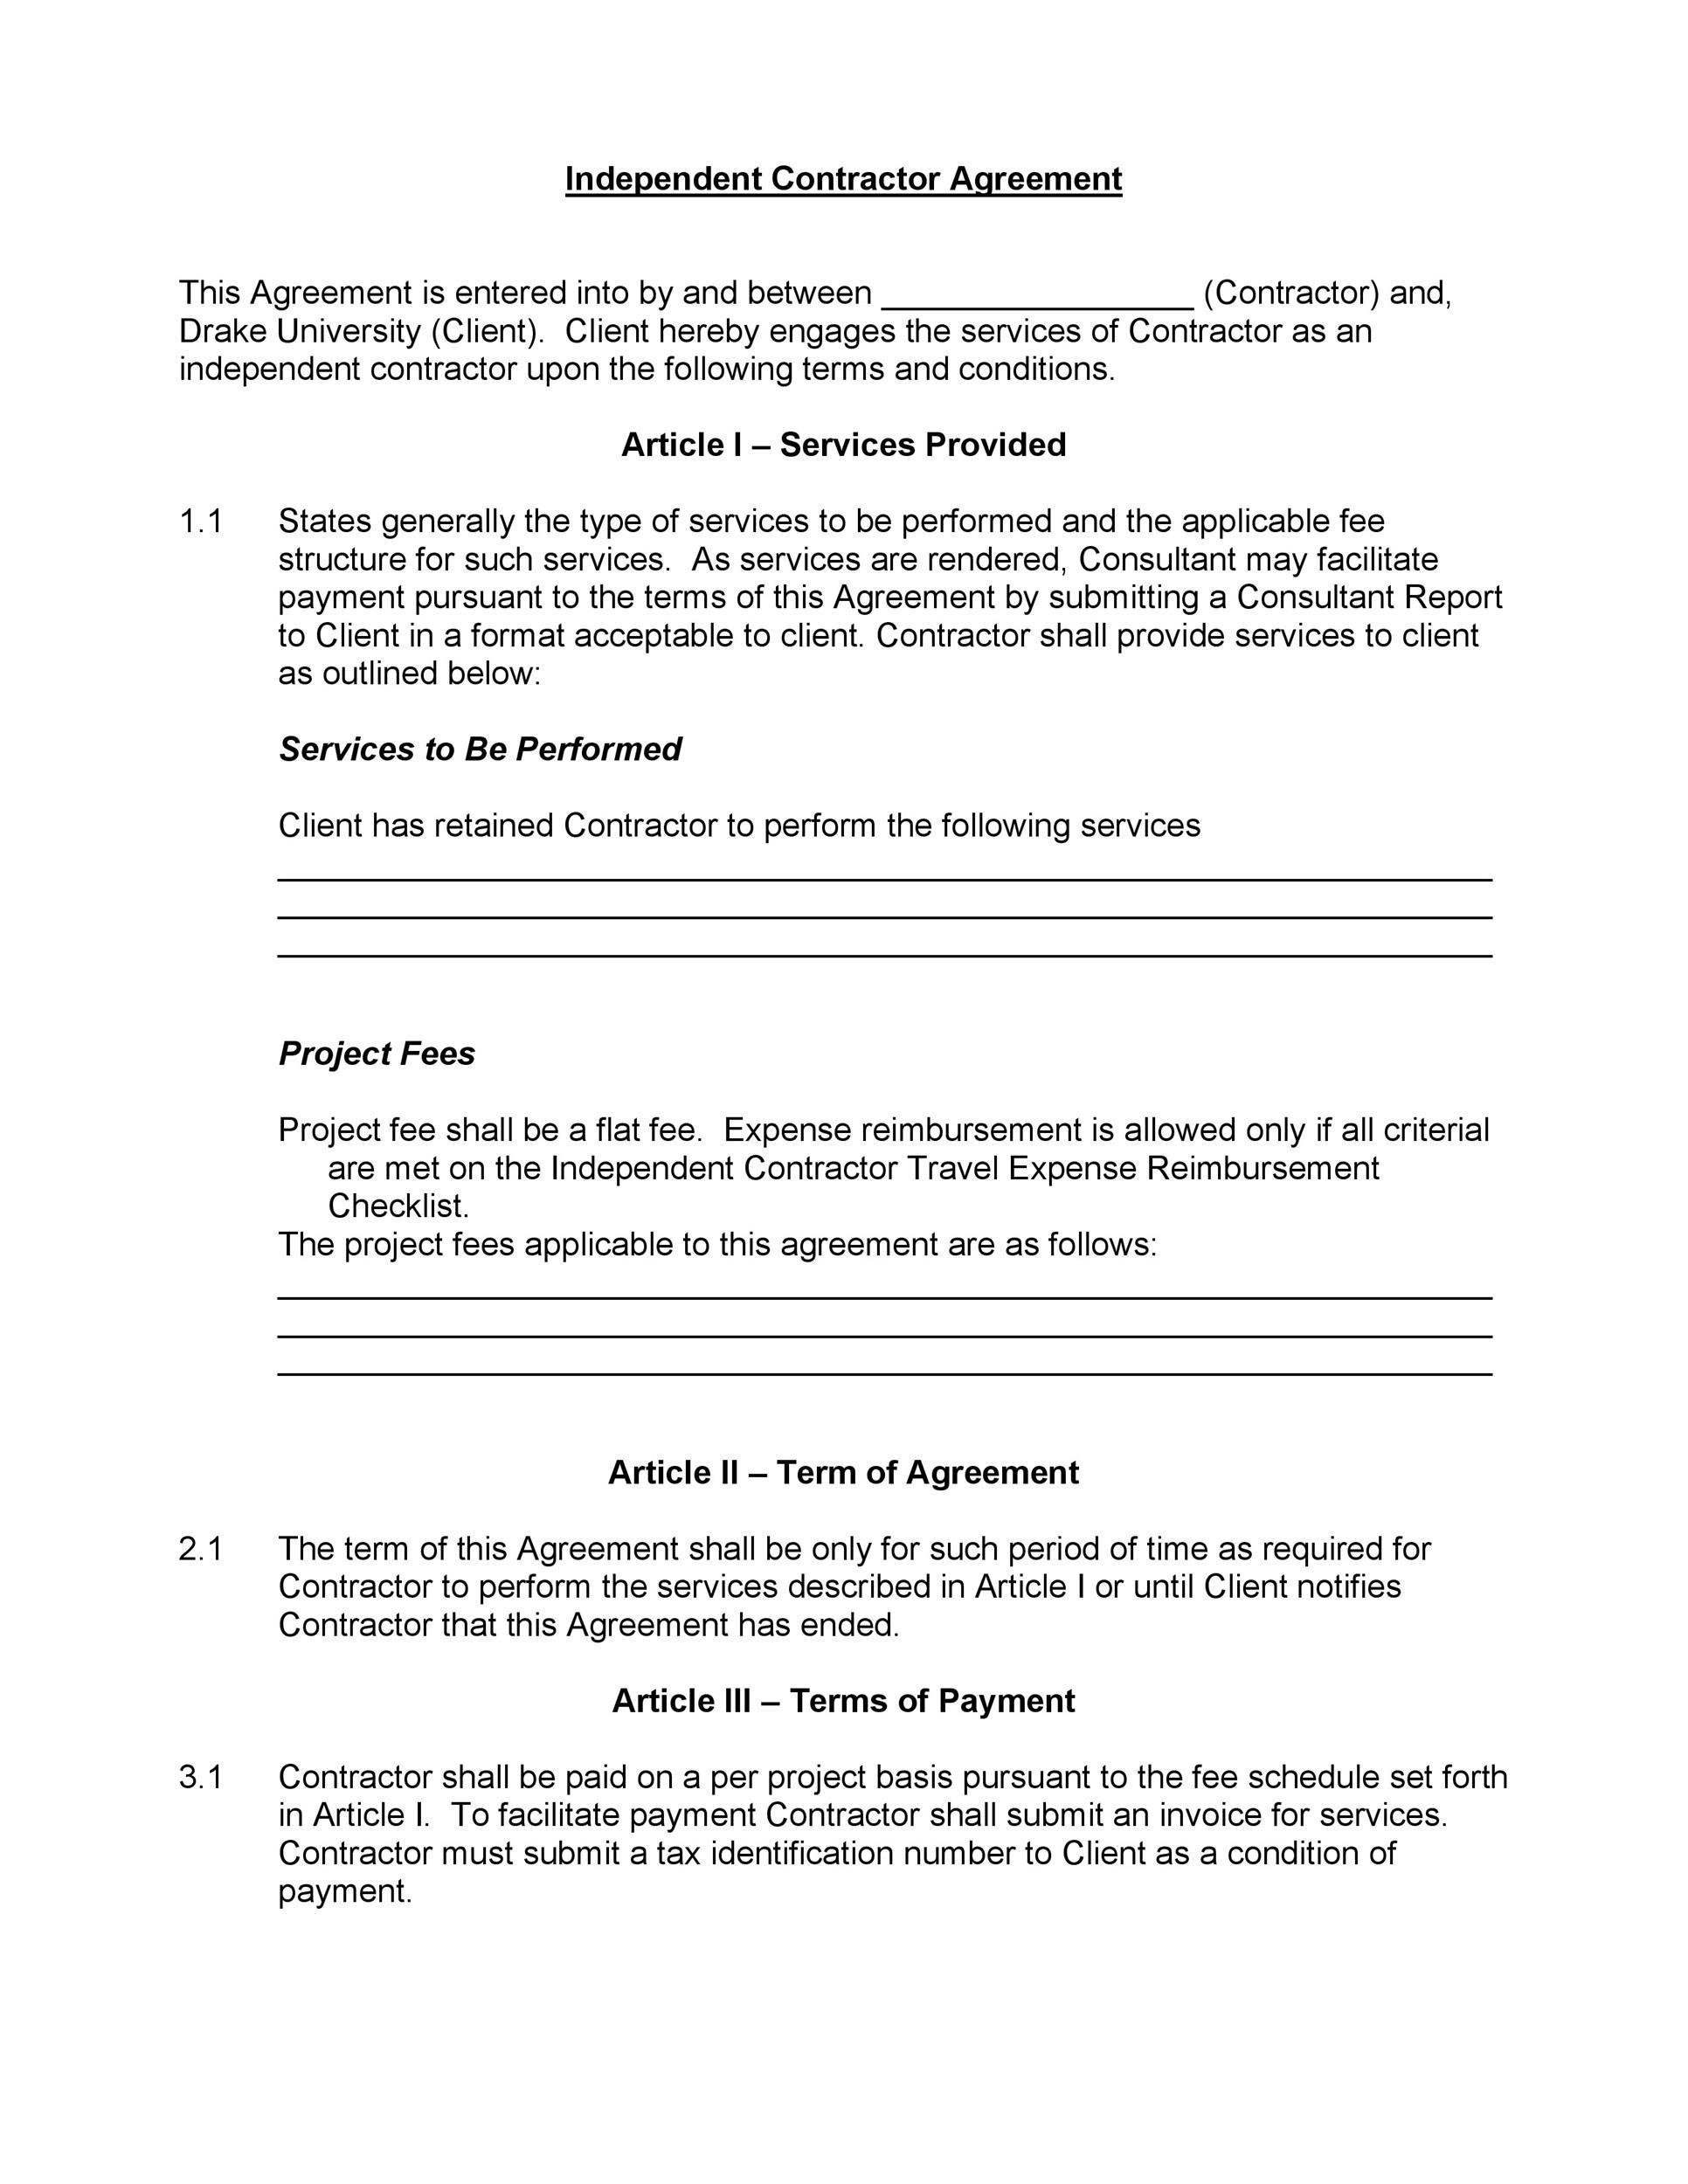 This independent contractor agreement template is designed to help you draft a custom agreement that reflects your. 50 Free Independent Contractor Agreement Forms Templates